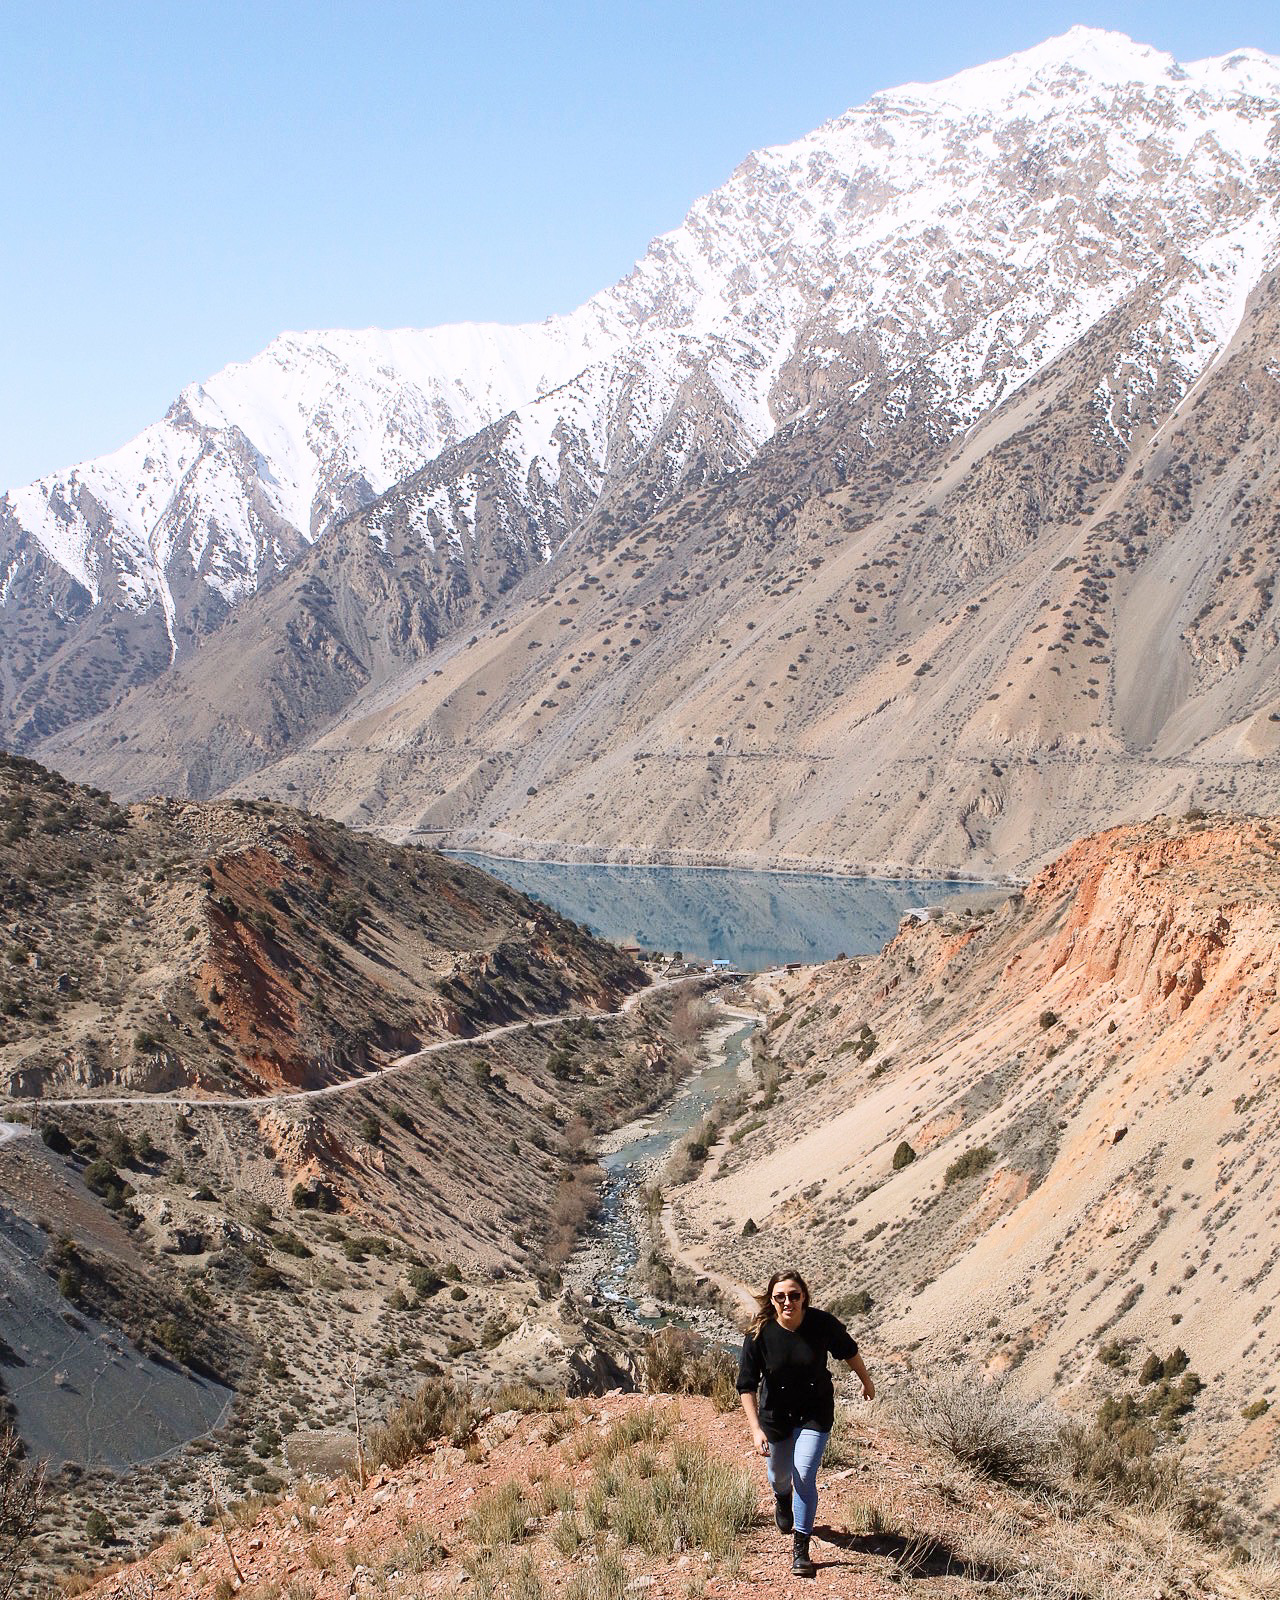 Iskanderkil, Tajikistan - The Adventure Decade